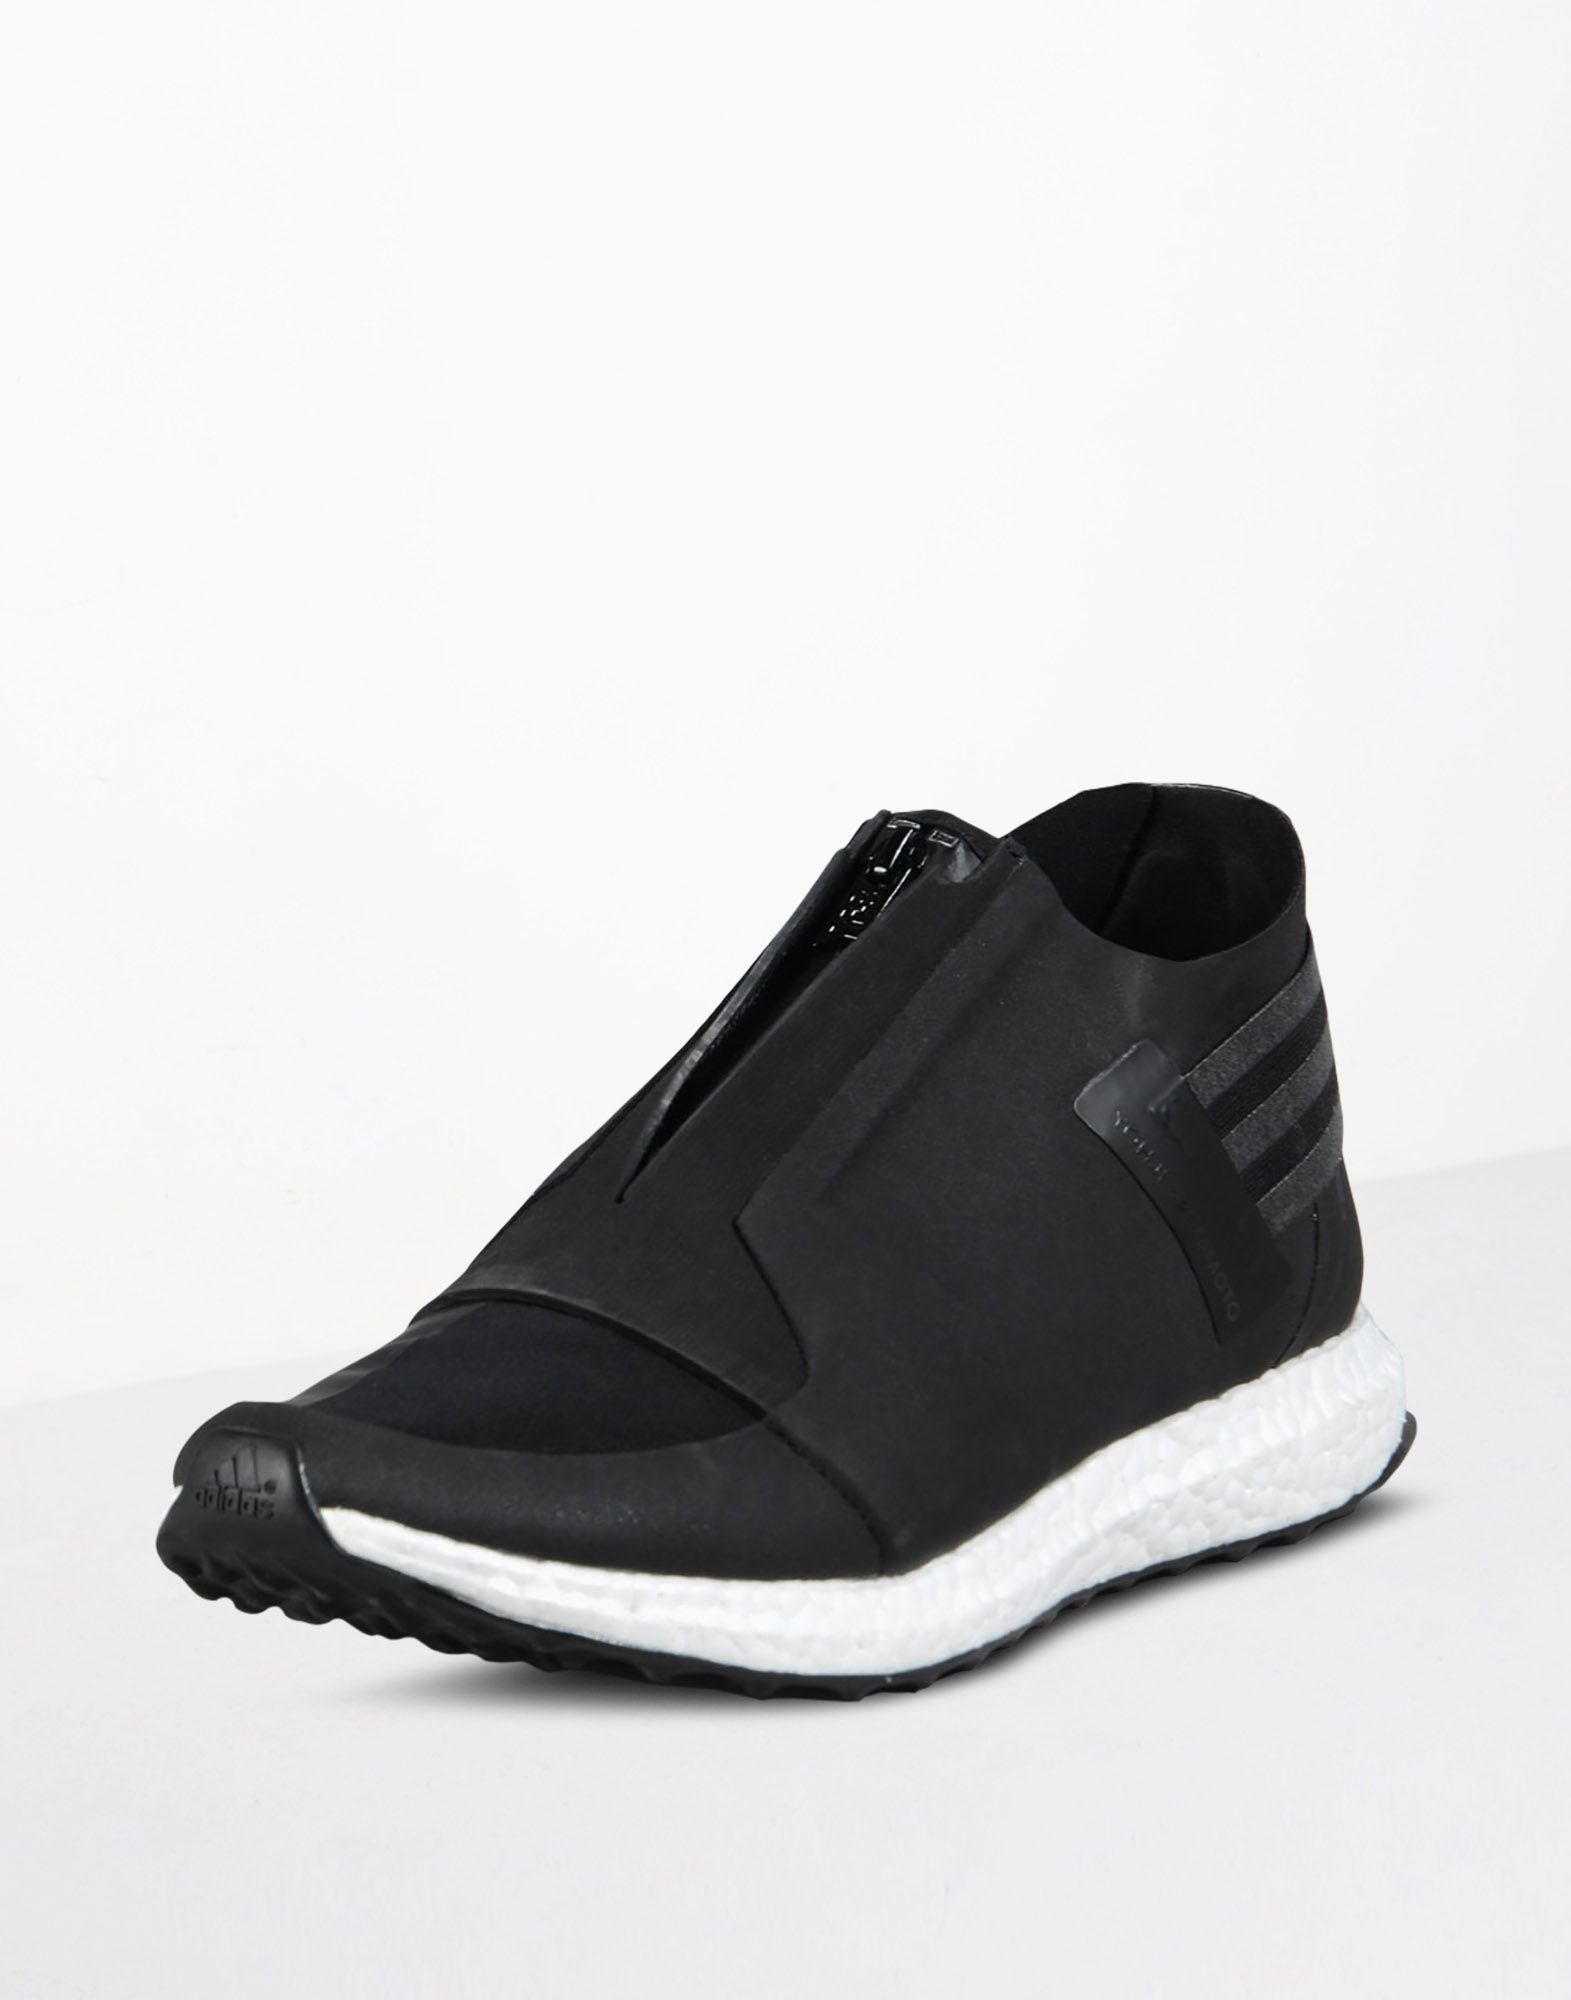 Zip For Xray Low 2019 Y 3 Shoes In Me Man AdidasFashion I6yfYvb7mg